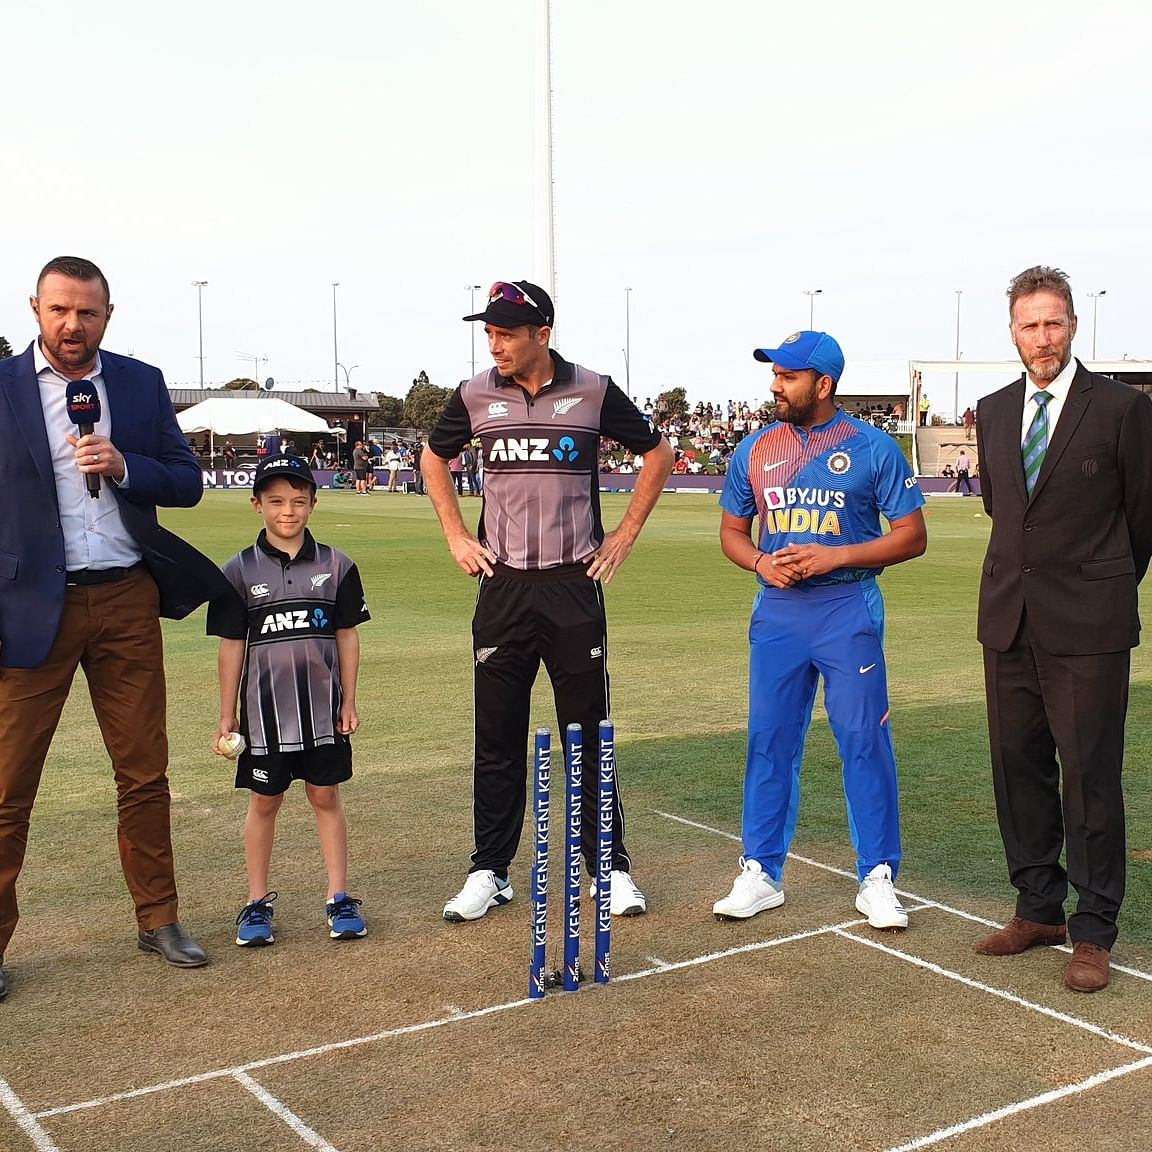 NZ vs IND 5th T20I: India wins toss, opts to bat first